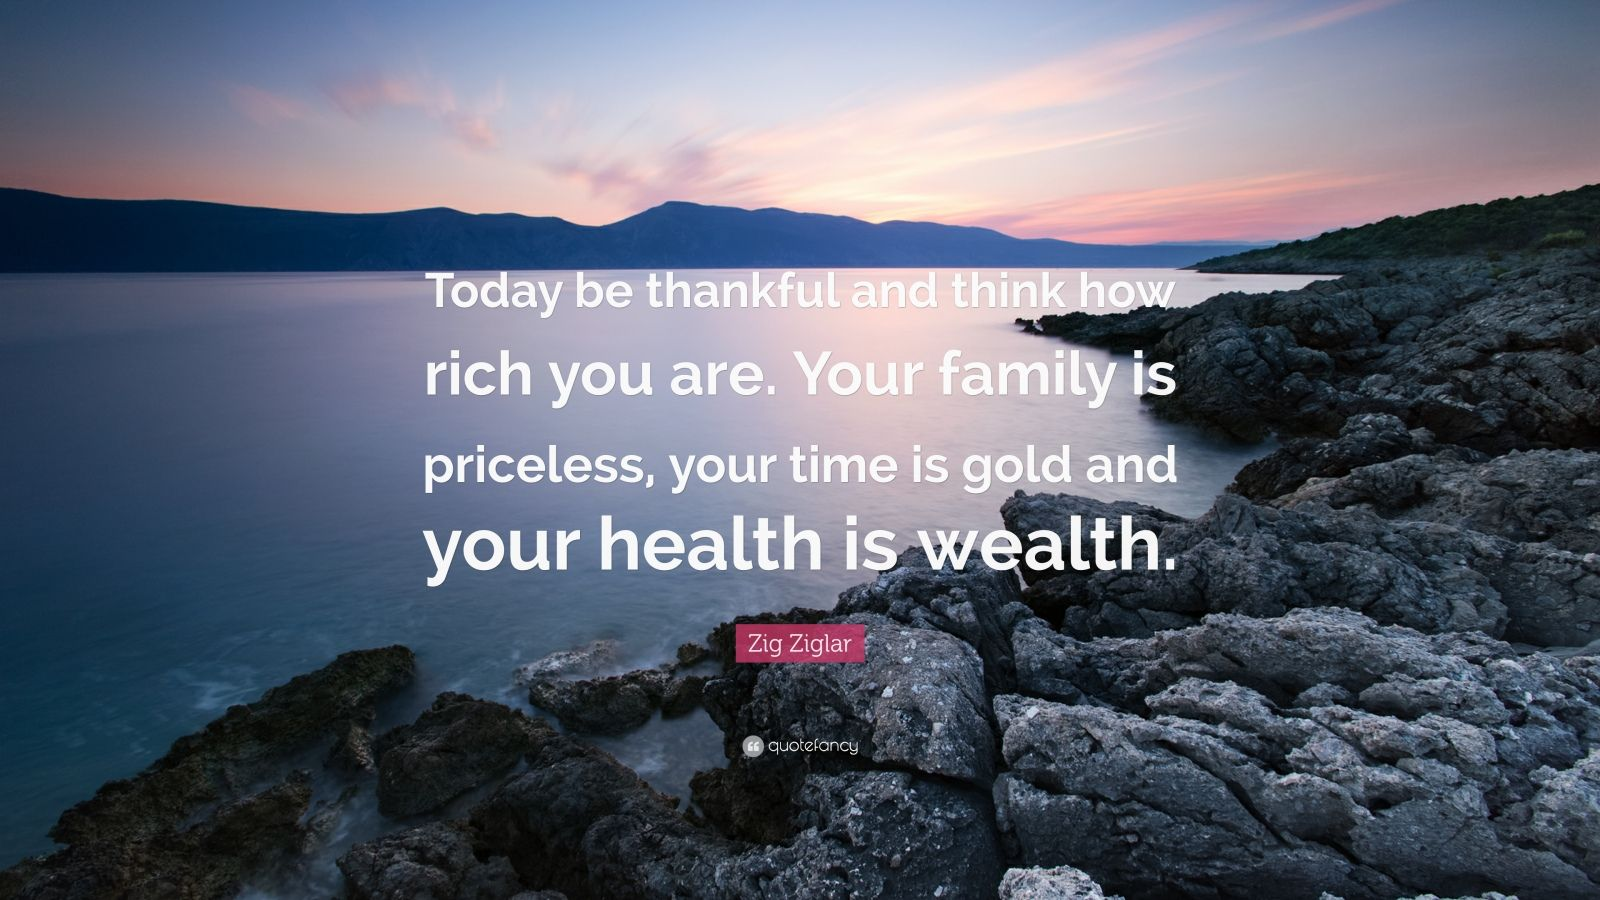 """Zig Ziglar Quote: """"Today be thankful and think how rich you are. Your family is priceless, your time is gold and your health is wealth."""""""